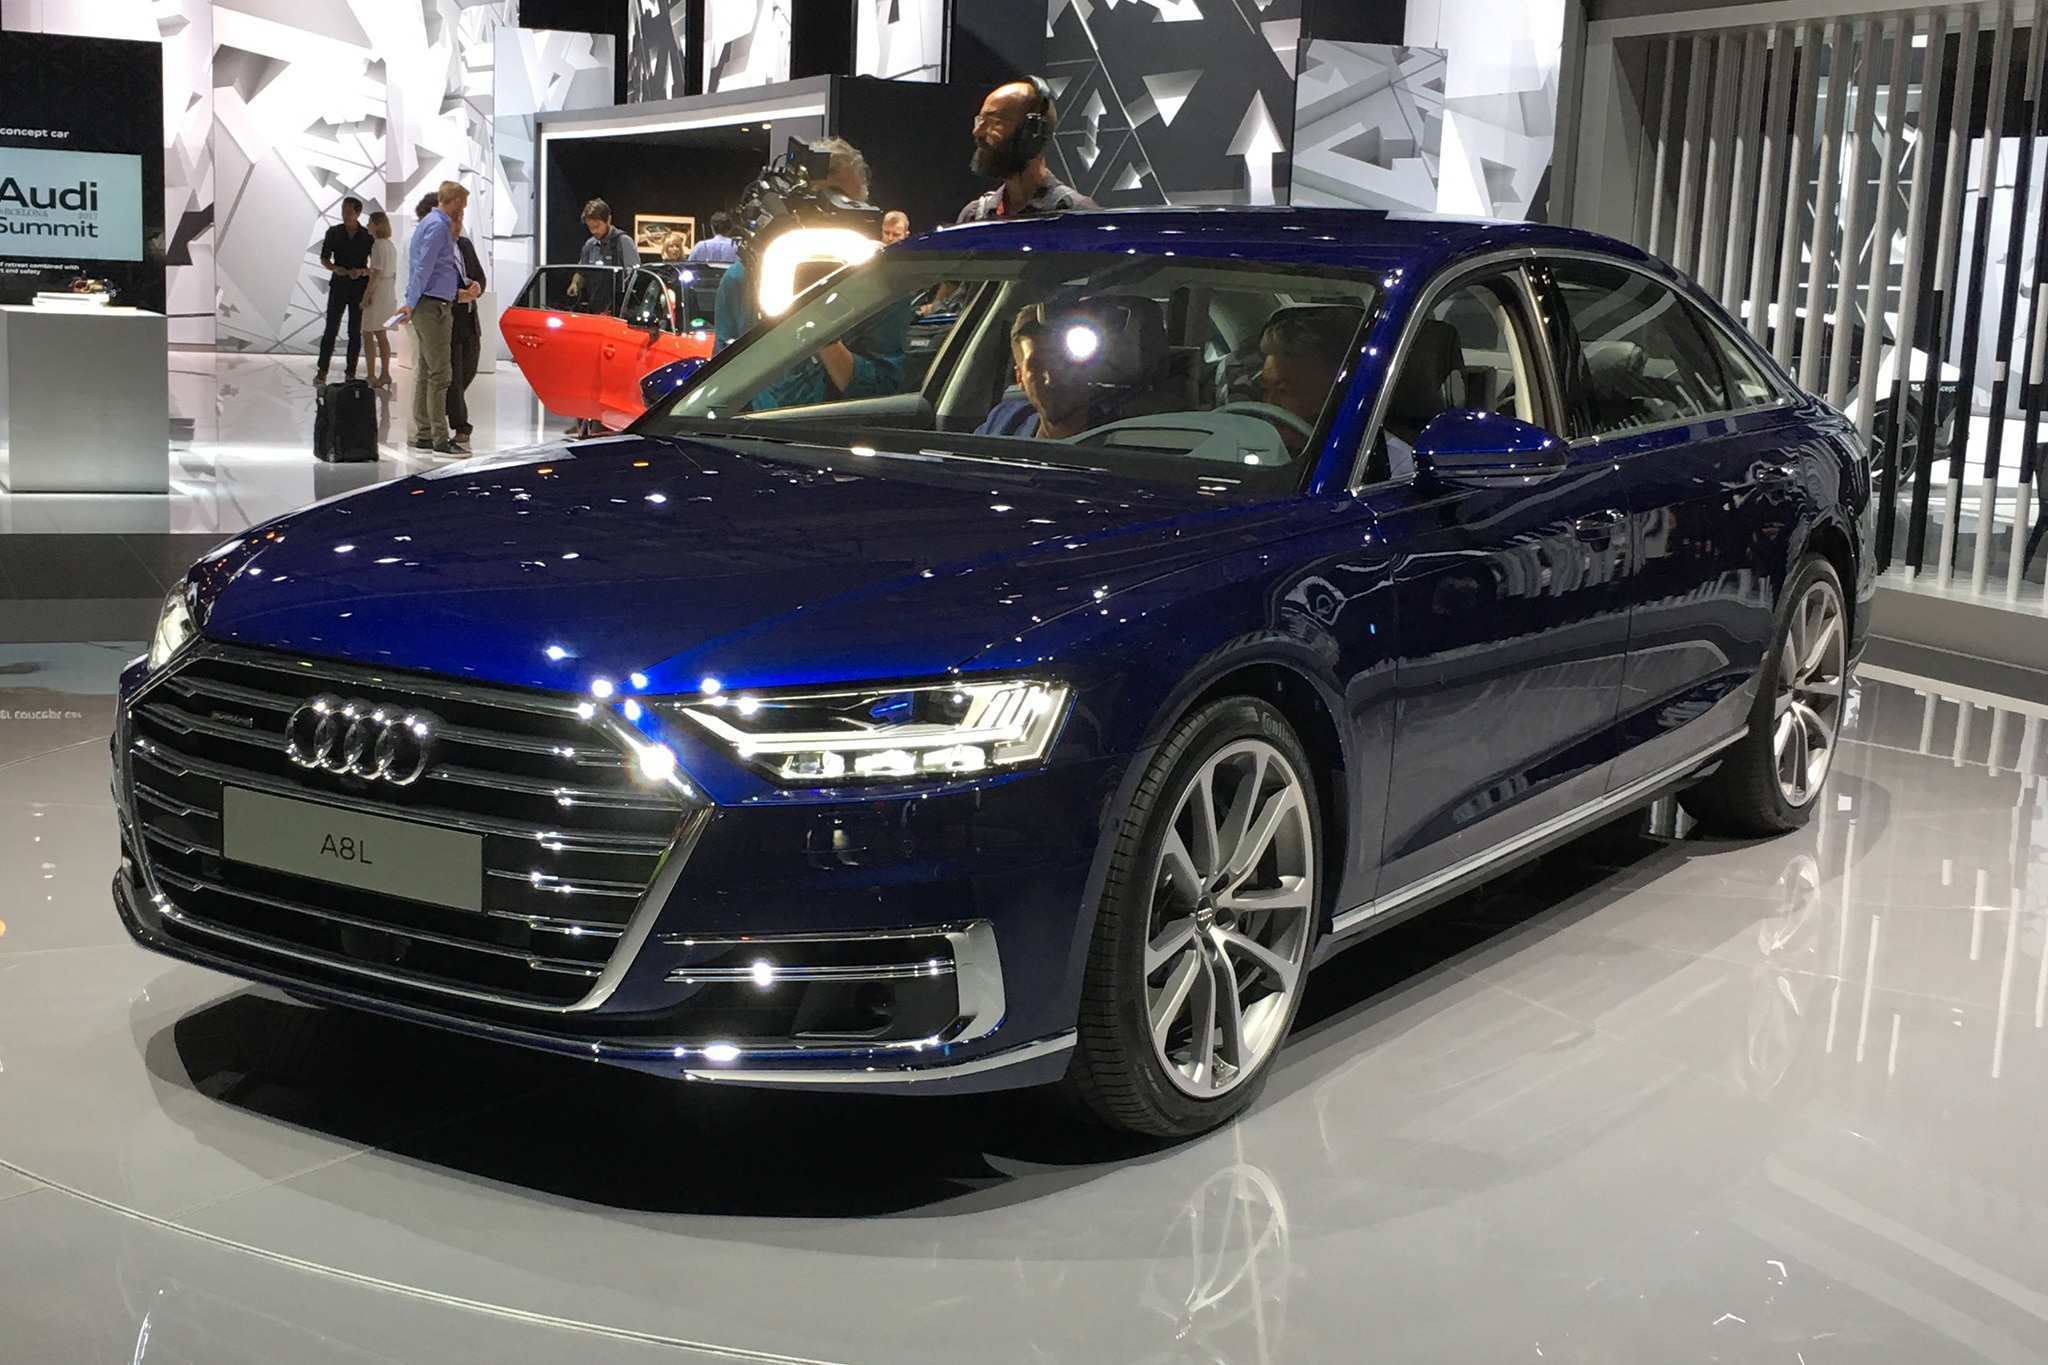 32 Concept of 2019 Audi A8 L Review for 2019 Audi A8 L